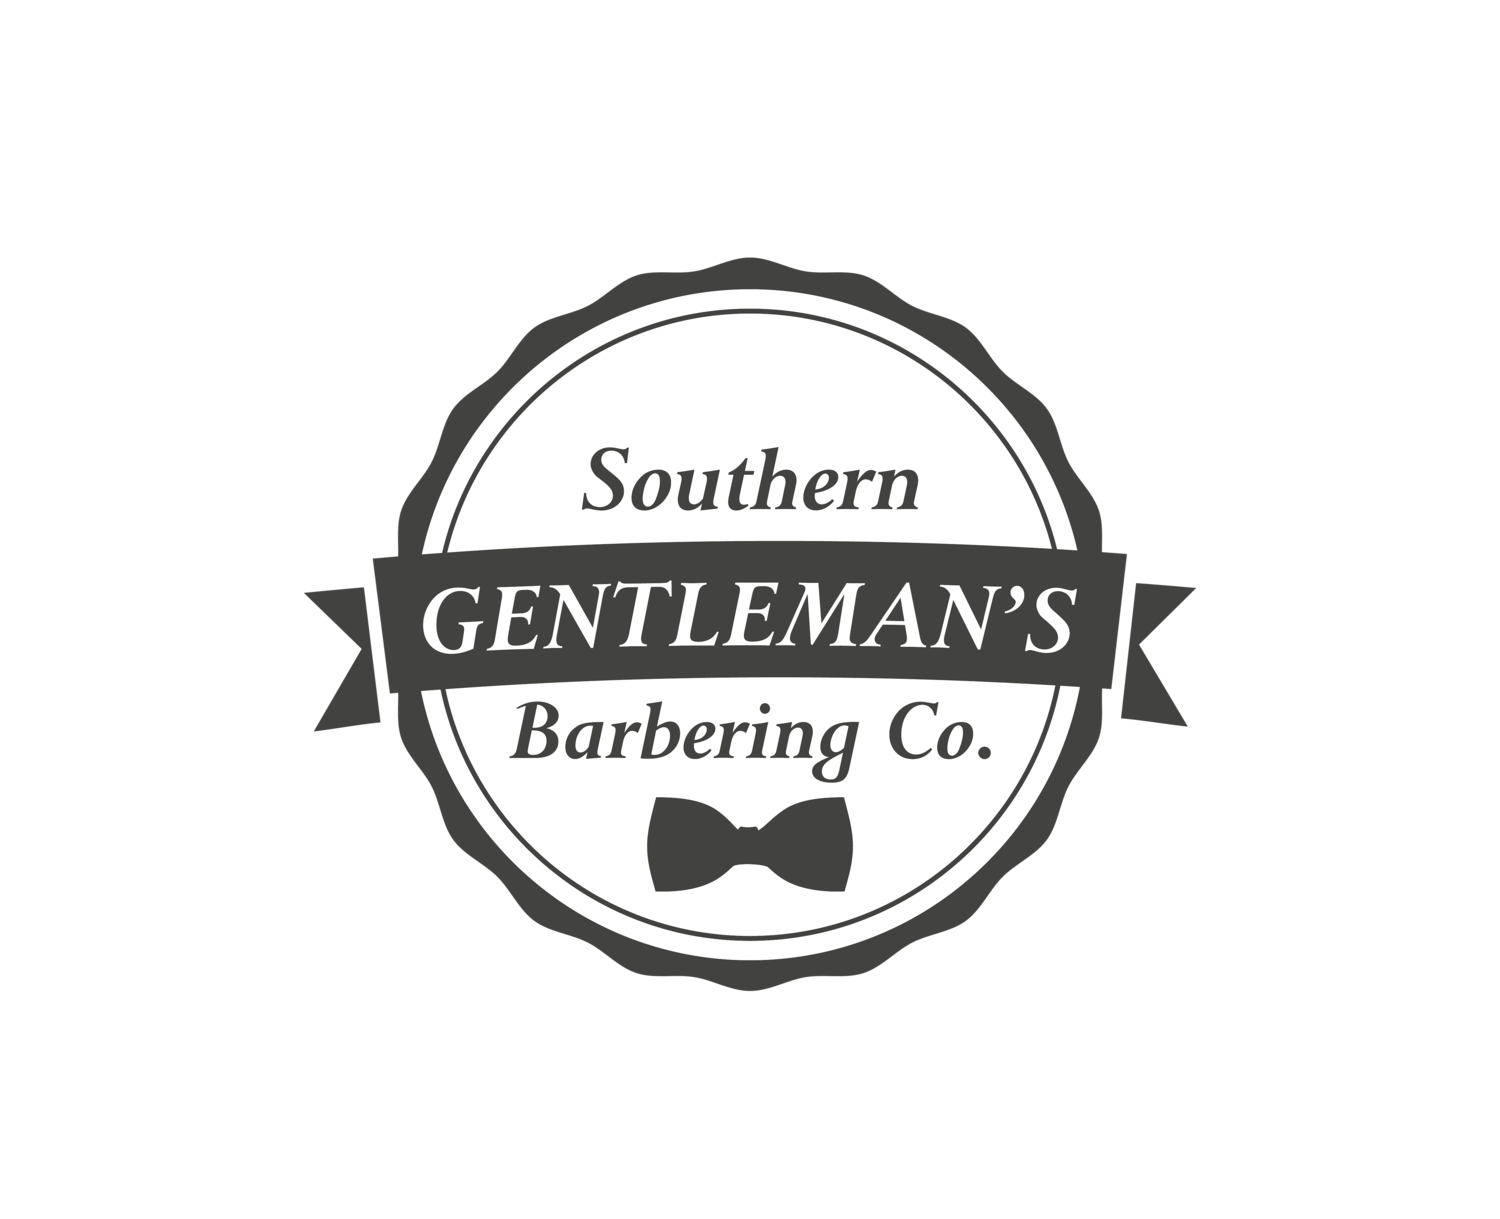 Southern Gentleman's Barbering Co.